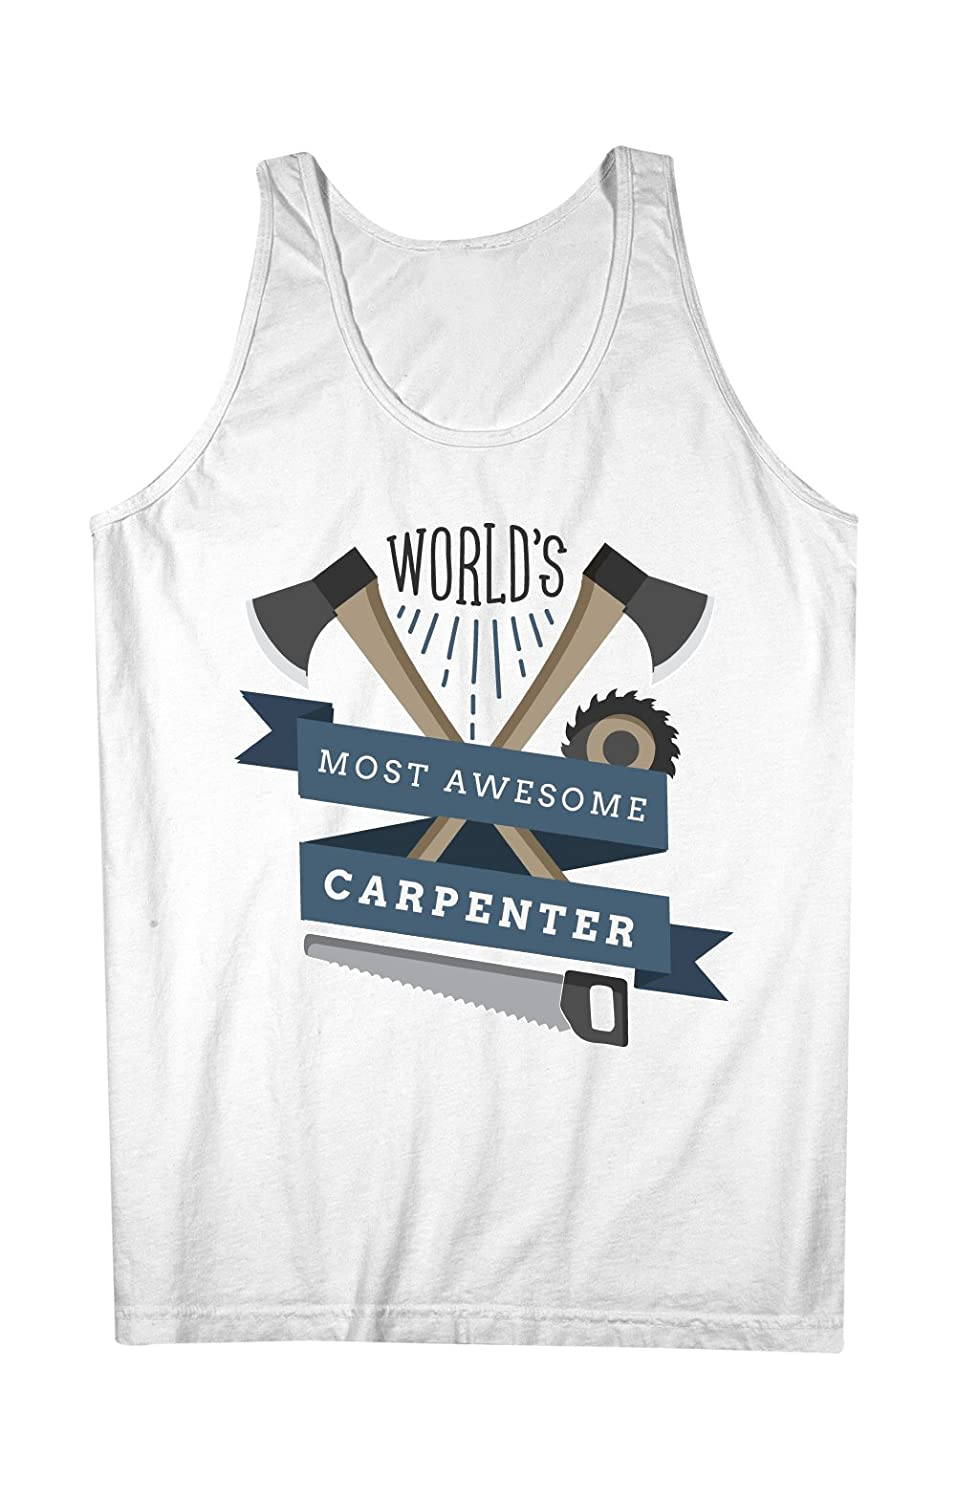 World's Most Awesome Carpenter Woodworker 男性用 Tank Top Sleeveless Shirt